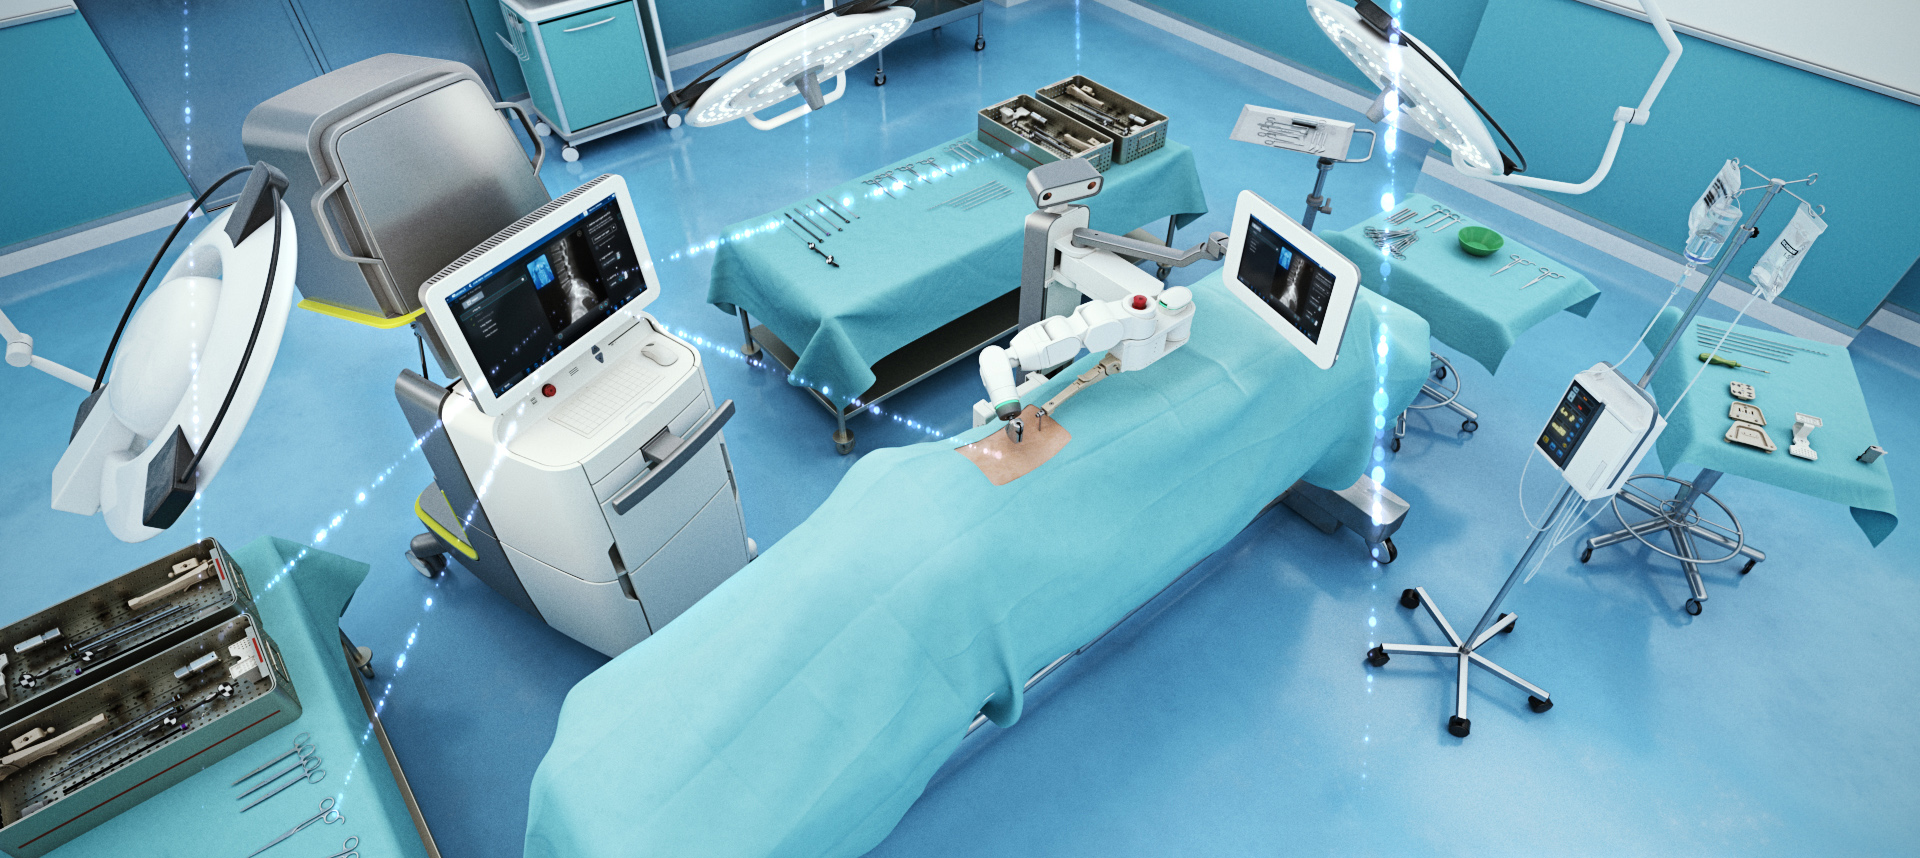 mazor-core-surgical-room